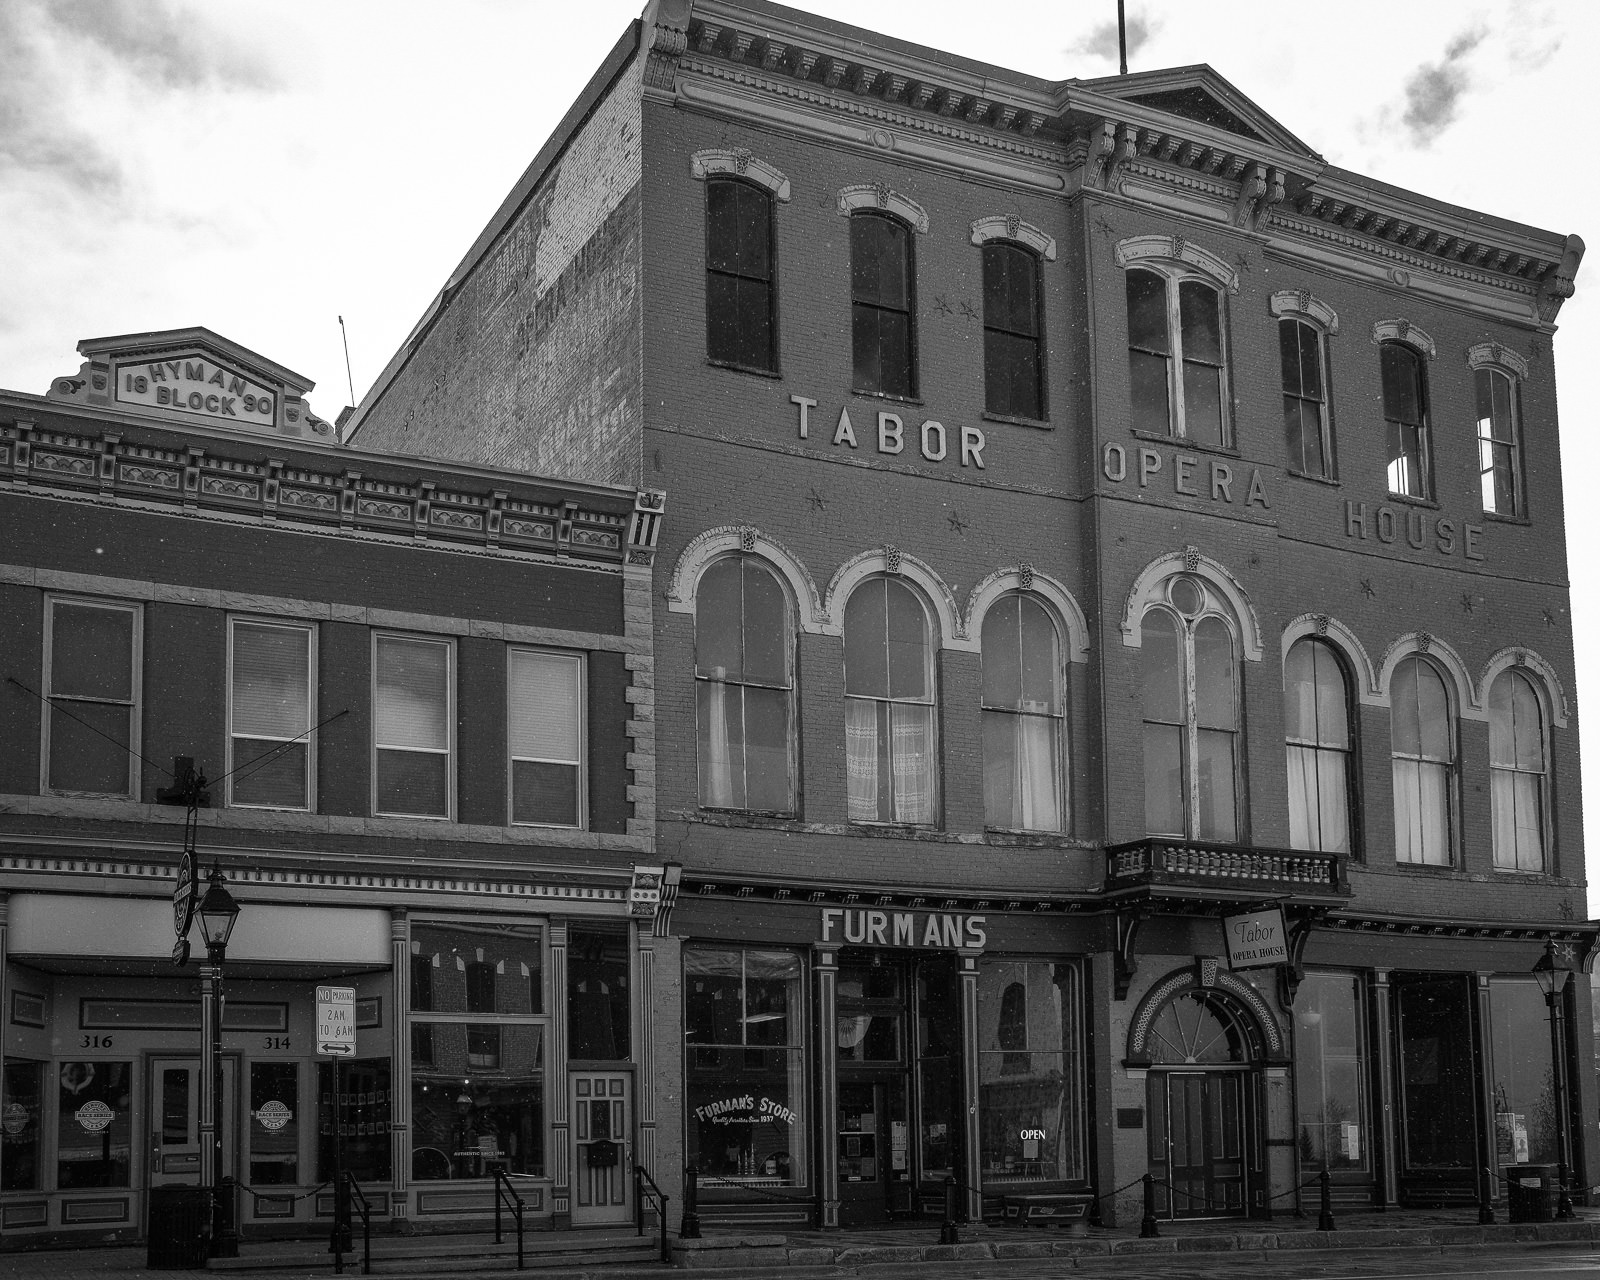 Day 143- 365 Day B&W Photo Challenge - The Tabor Opera House in Leadville, Colorado built in 100 day back in 1879 by Horace Tabor and has been here for 141 years. - Fuji X-T3, XF 23mm f/2, Acros R Film Simulation